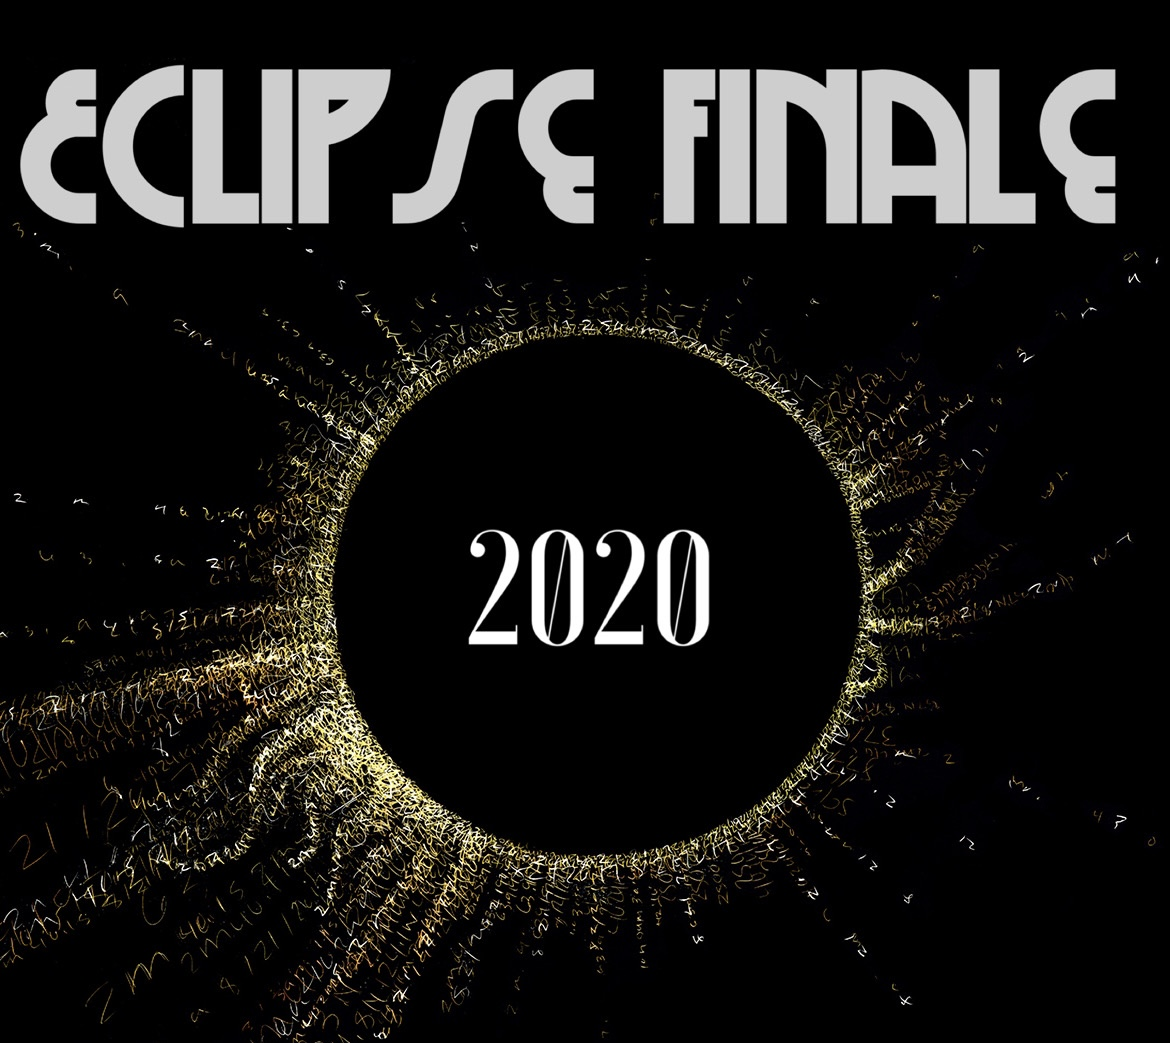 The Eclipse Finale 2020